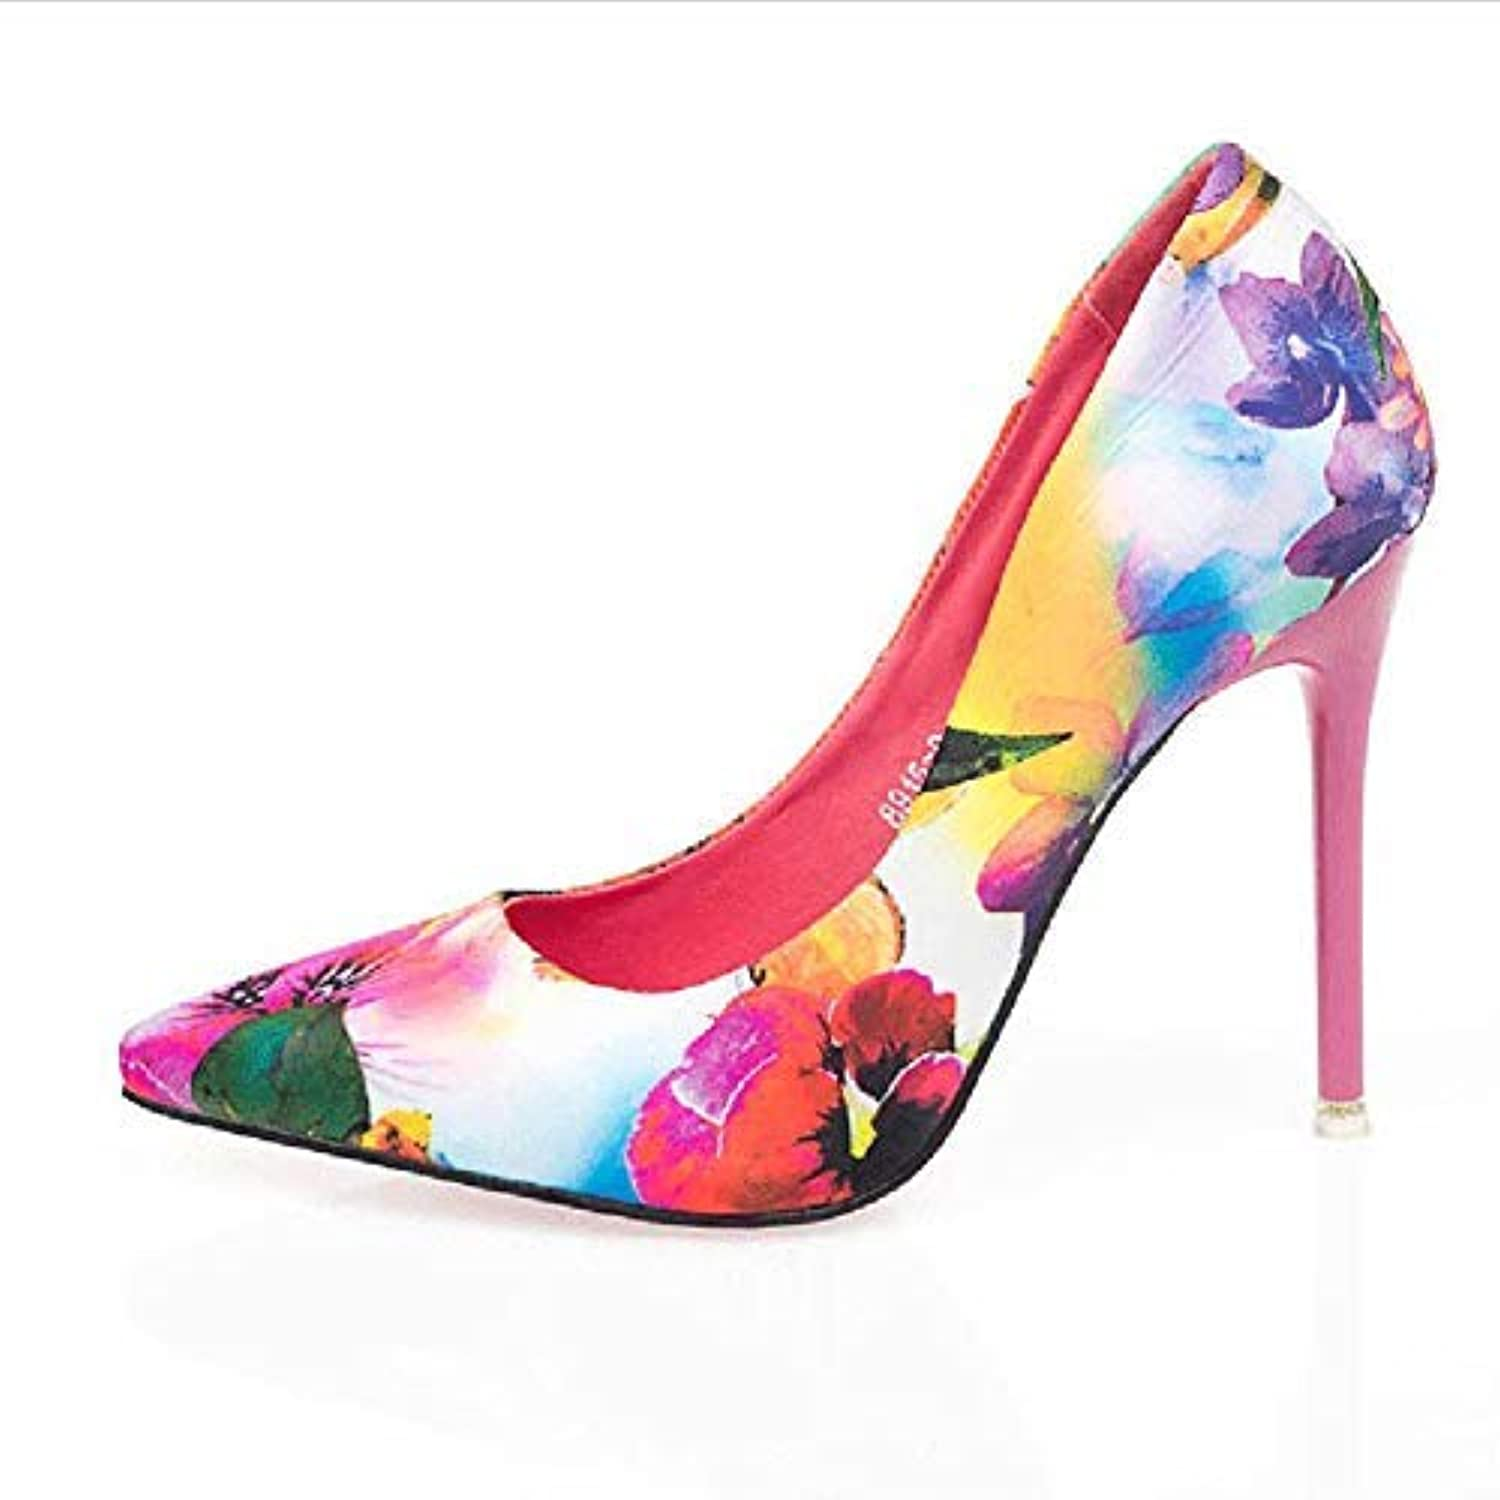 shoes Court shoes Women's shoes Block Heel High Heel Fine Heel Floral Pointed High-Heeled shoes OL Women's shoes Haiming (color   Pink, Size   34)